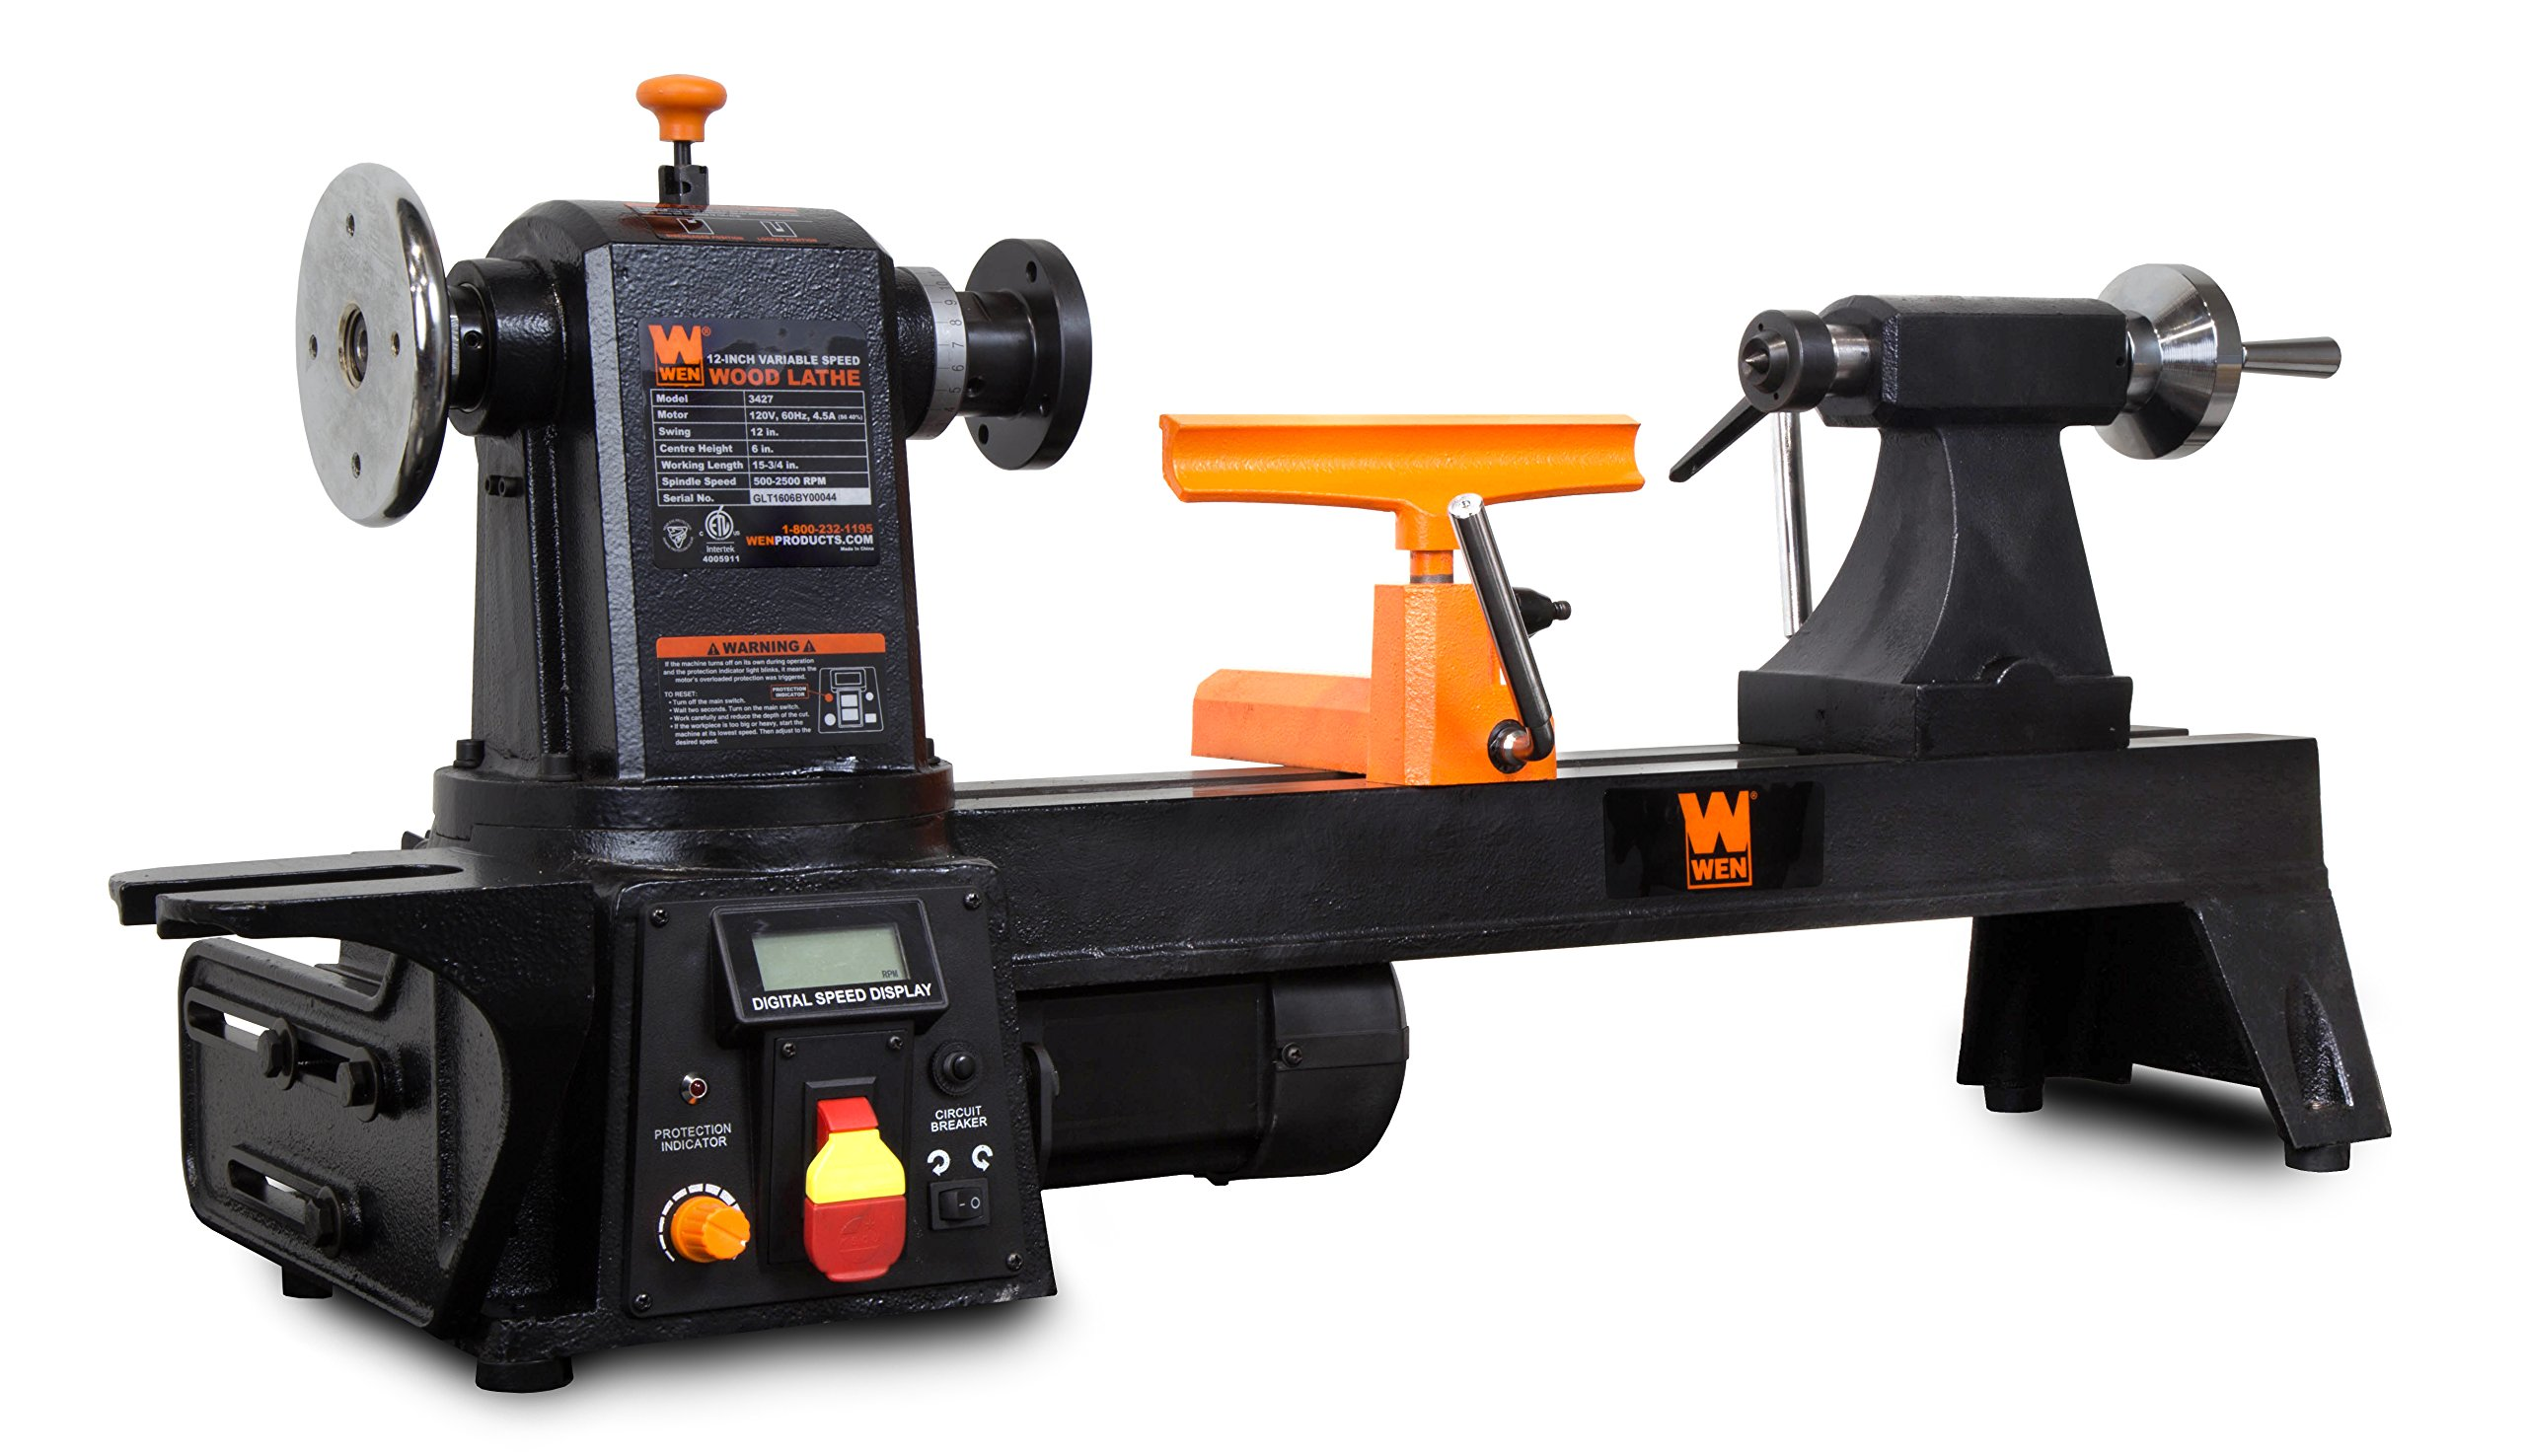 WEN 34027 12-Inch by 15-3/4 Inch Variable Speed Multi-Directional Wood Lathe